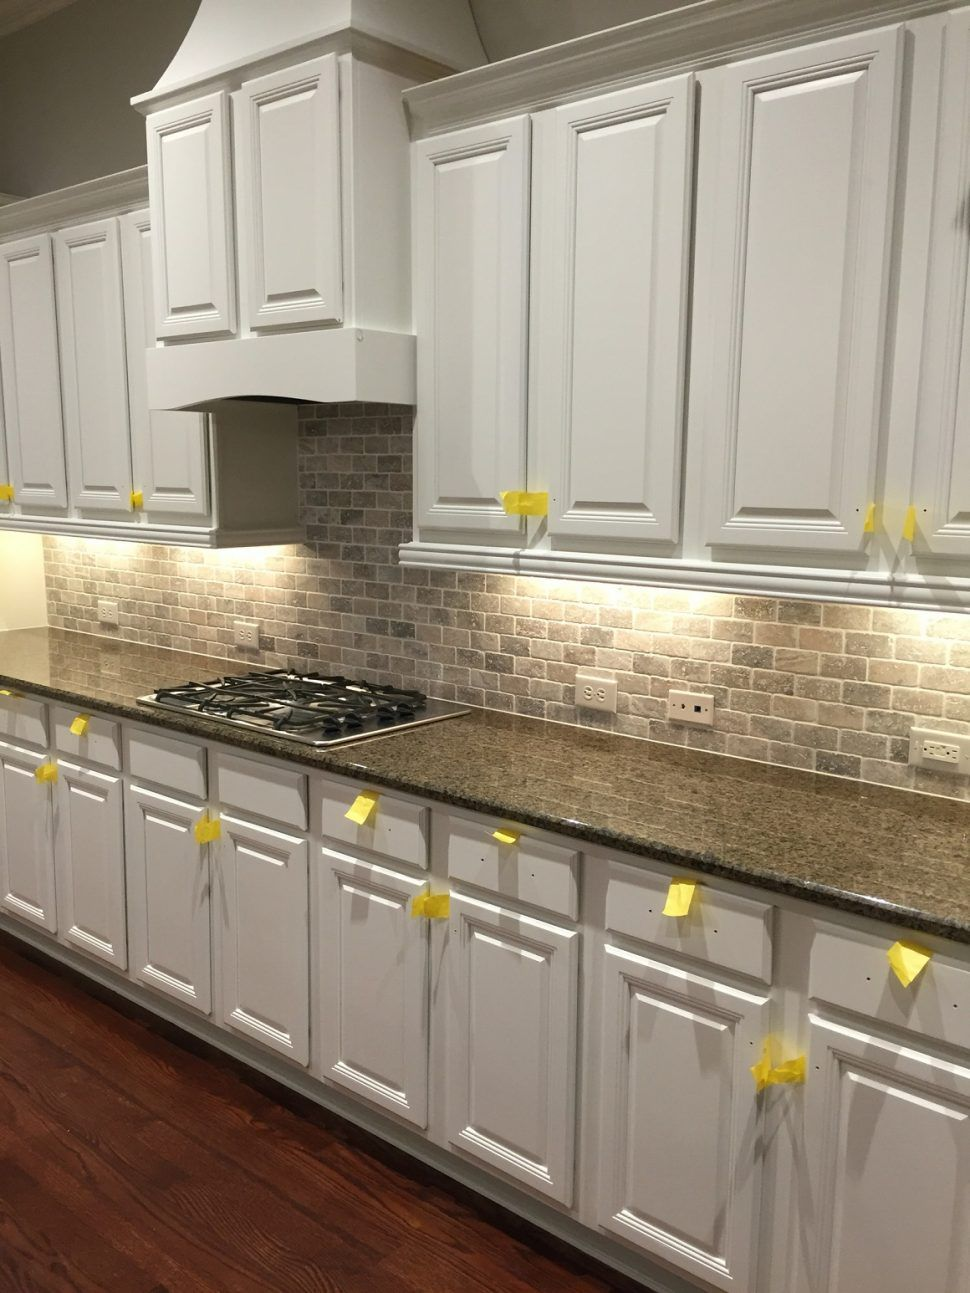 Kitchen White Cabinets Black Countertops Gray Walls Kitchen Backsplash Countertop For Kitchens What Backsplash For White Cabinets Brick Kitchen Kitchen Design